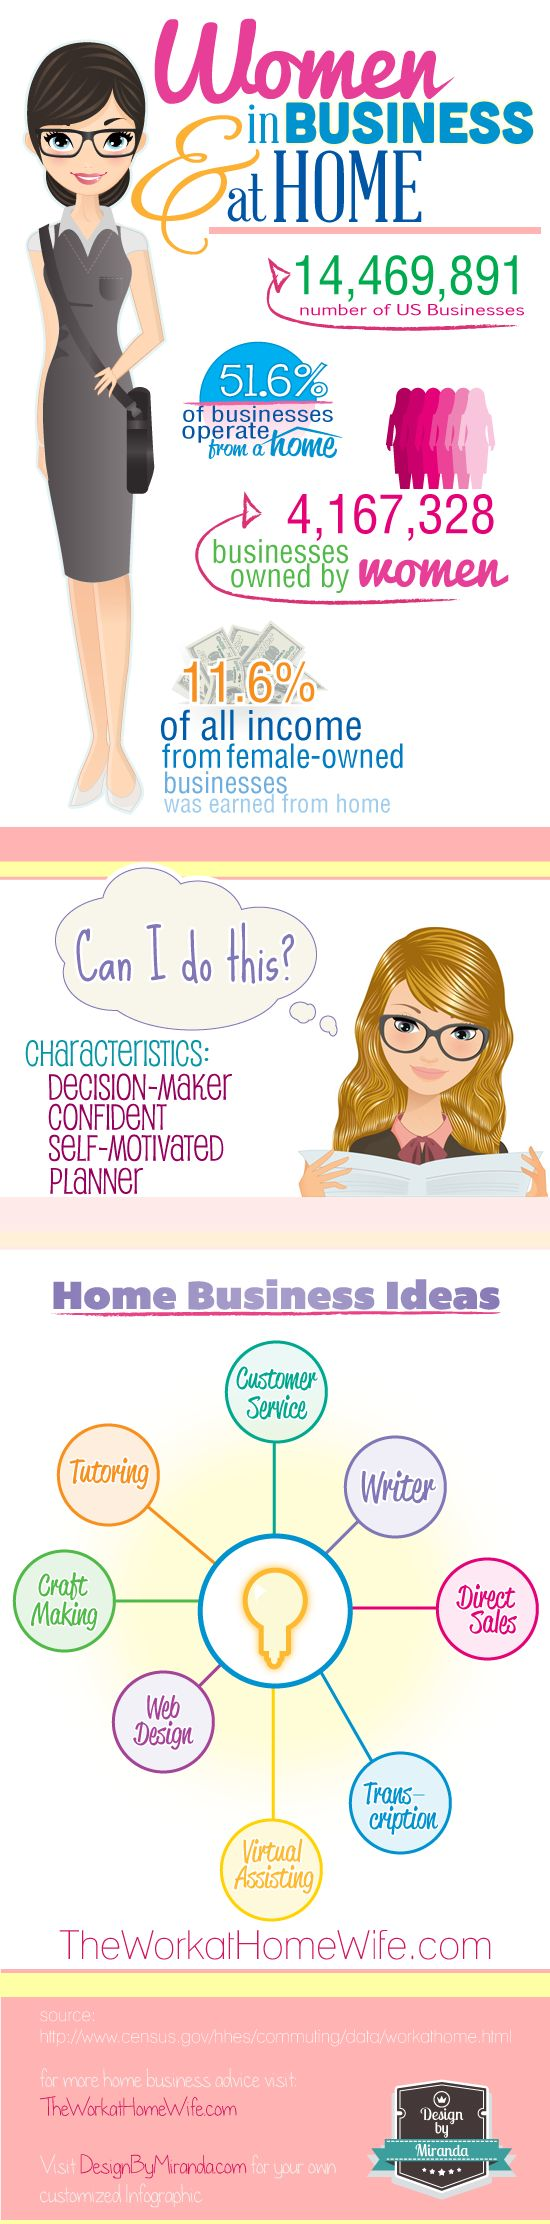 Have You Ever Considered Starting A Home Biz Here Is A Great Infographic About Women